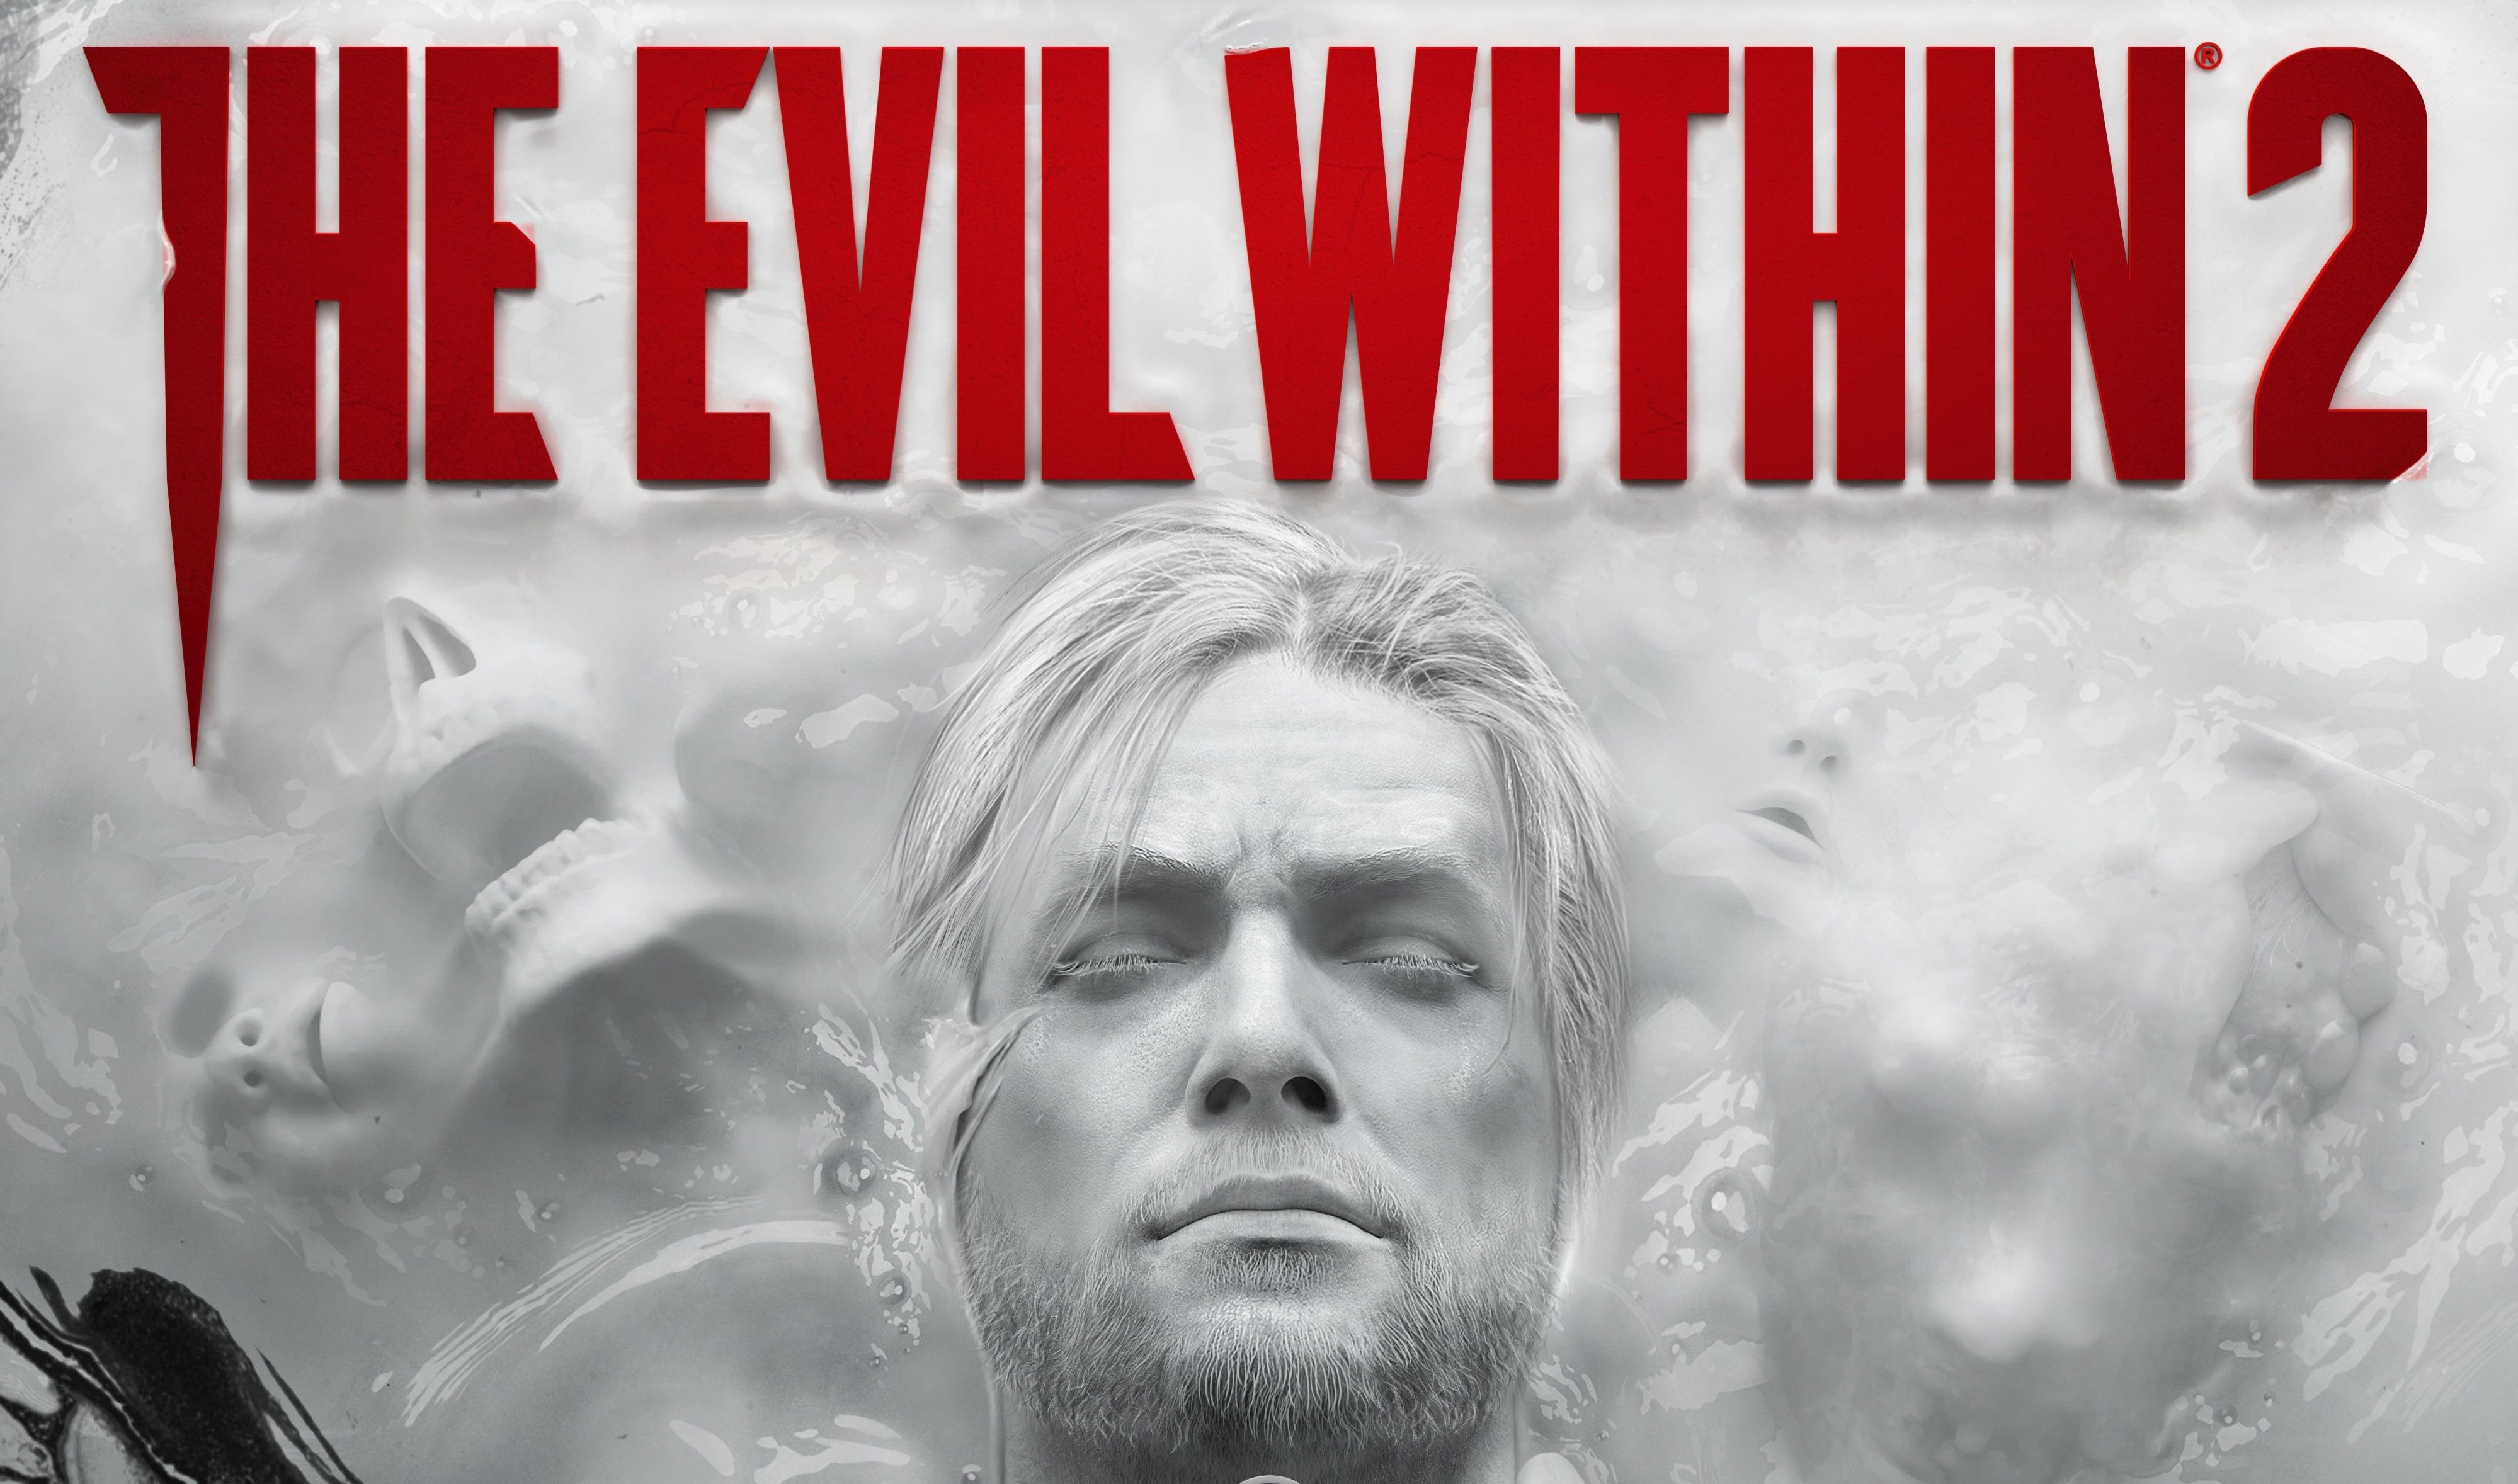 Wallpaper The Evil Within 2 4k Games 12718: Wallpaper The Evil Within 2, 4k, E3 2017, Games #13933